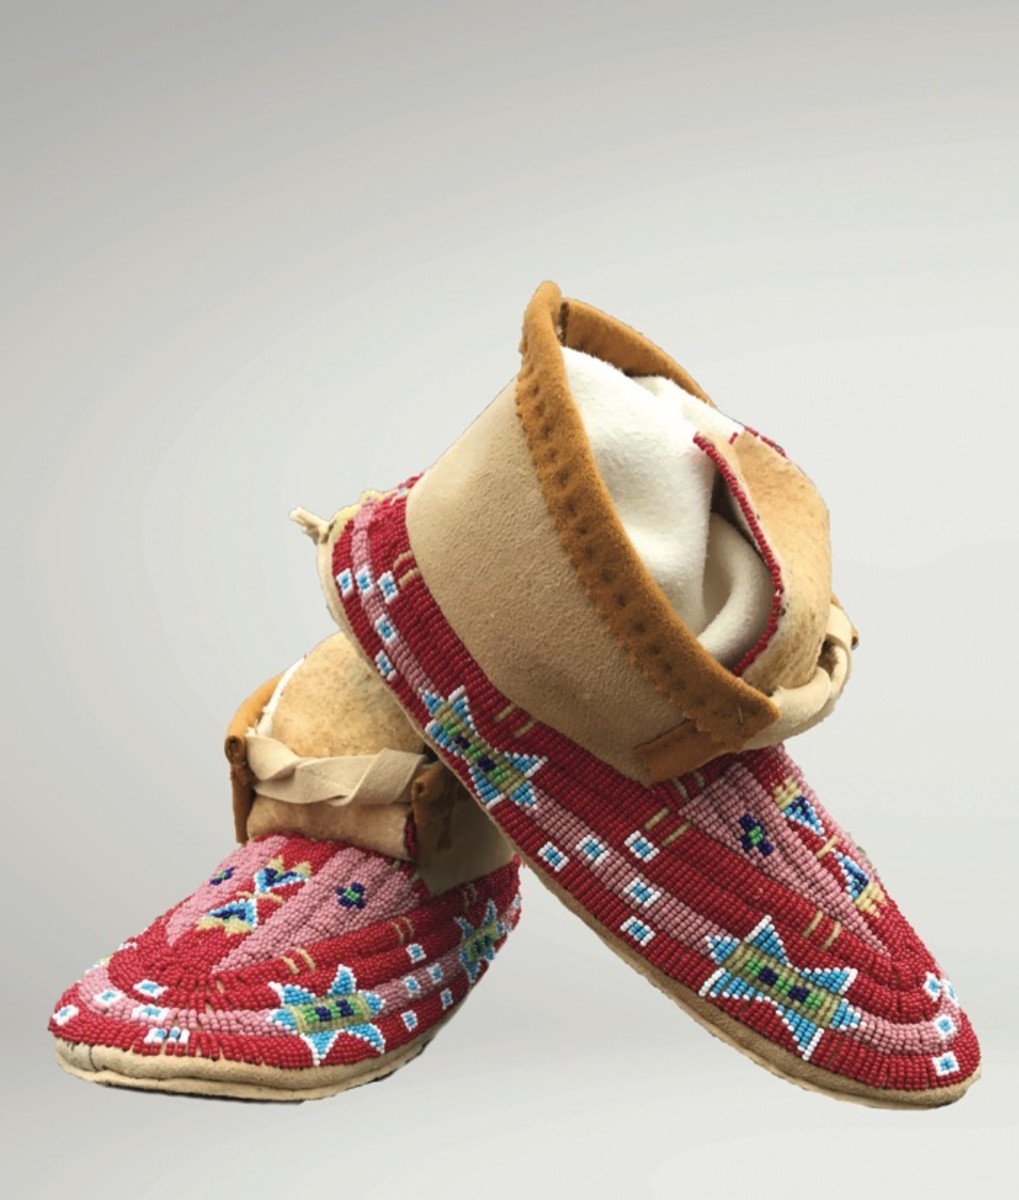 ICMN Issue #2 Master_singlepage_REPAGINATED_Page_019_Image_0001_Craftwork 1_Beaded Moccasins_Jozee Campos_th